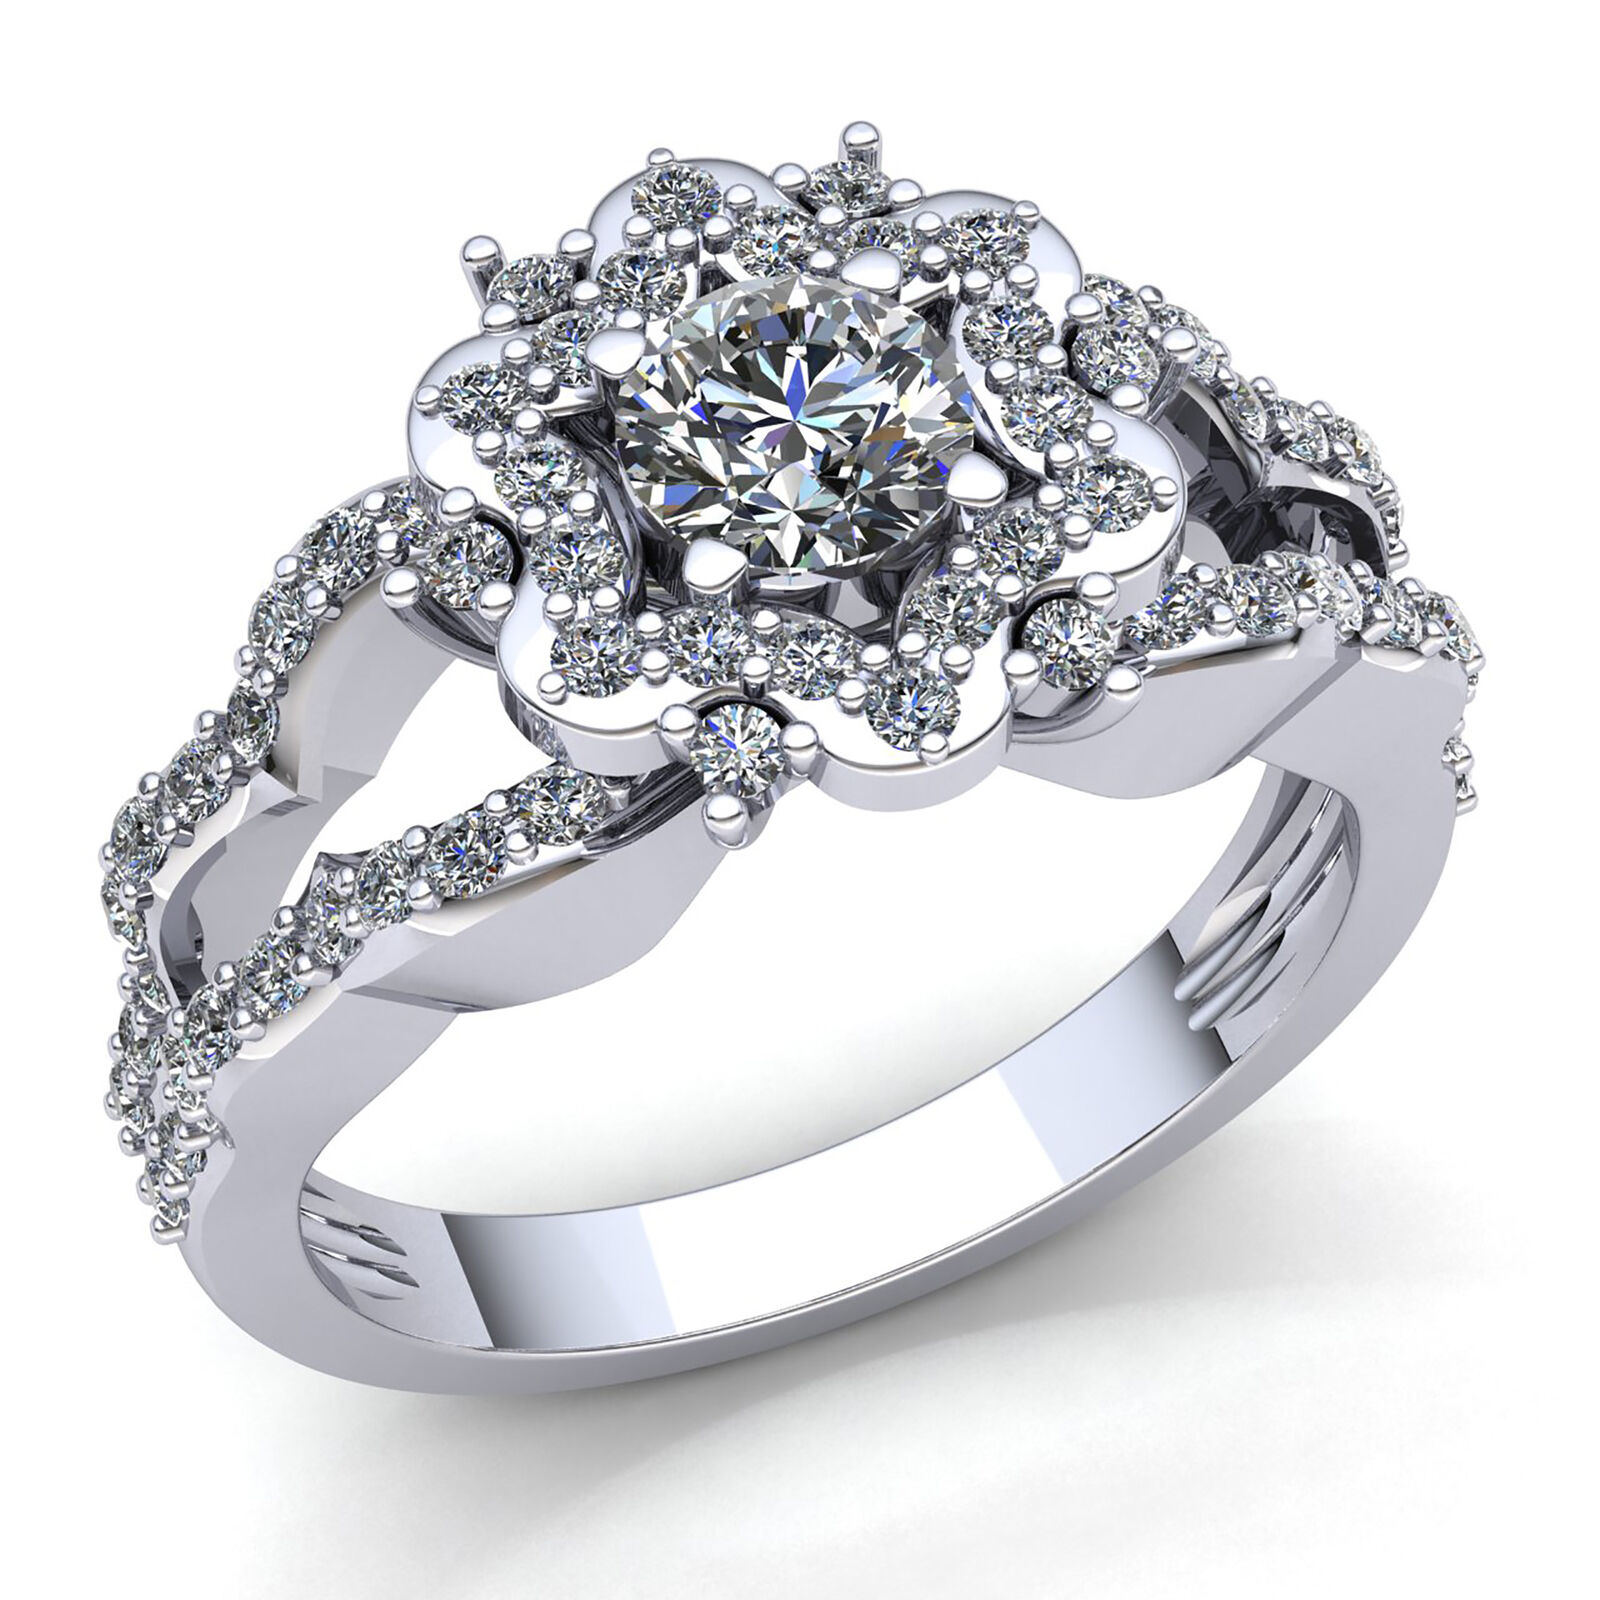 0.5ct Round Cut Diamond Ladies Floral Halo Solitaire Engagement Ring 10K gold